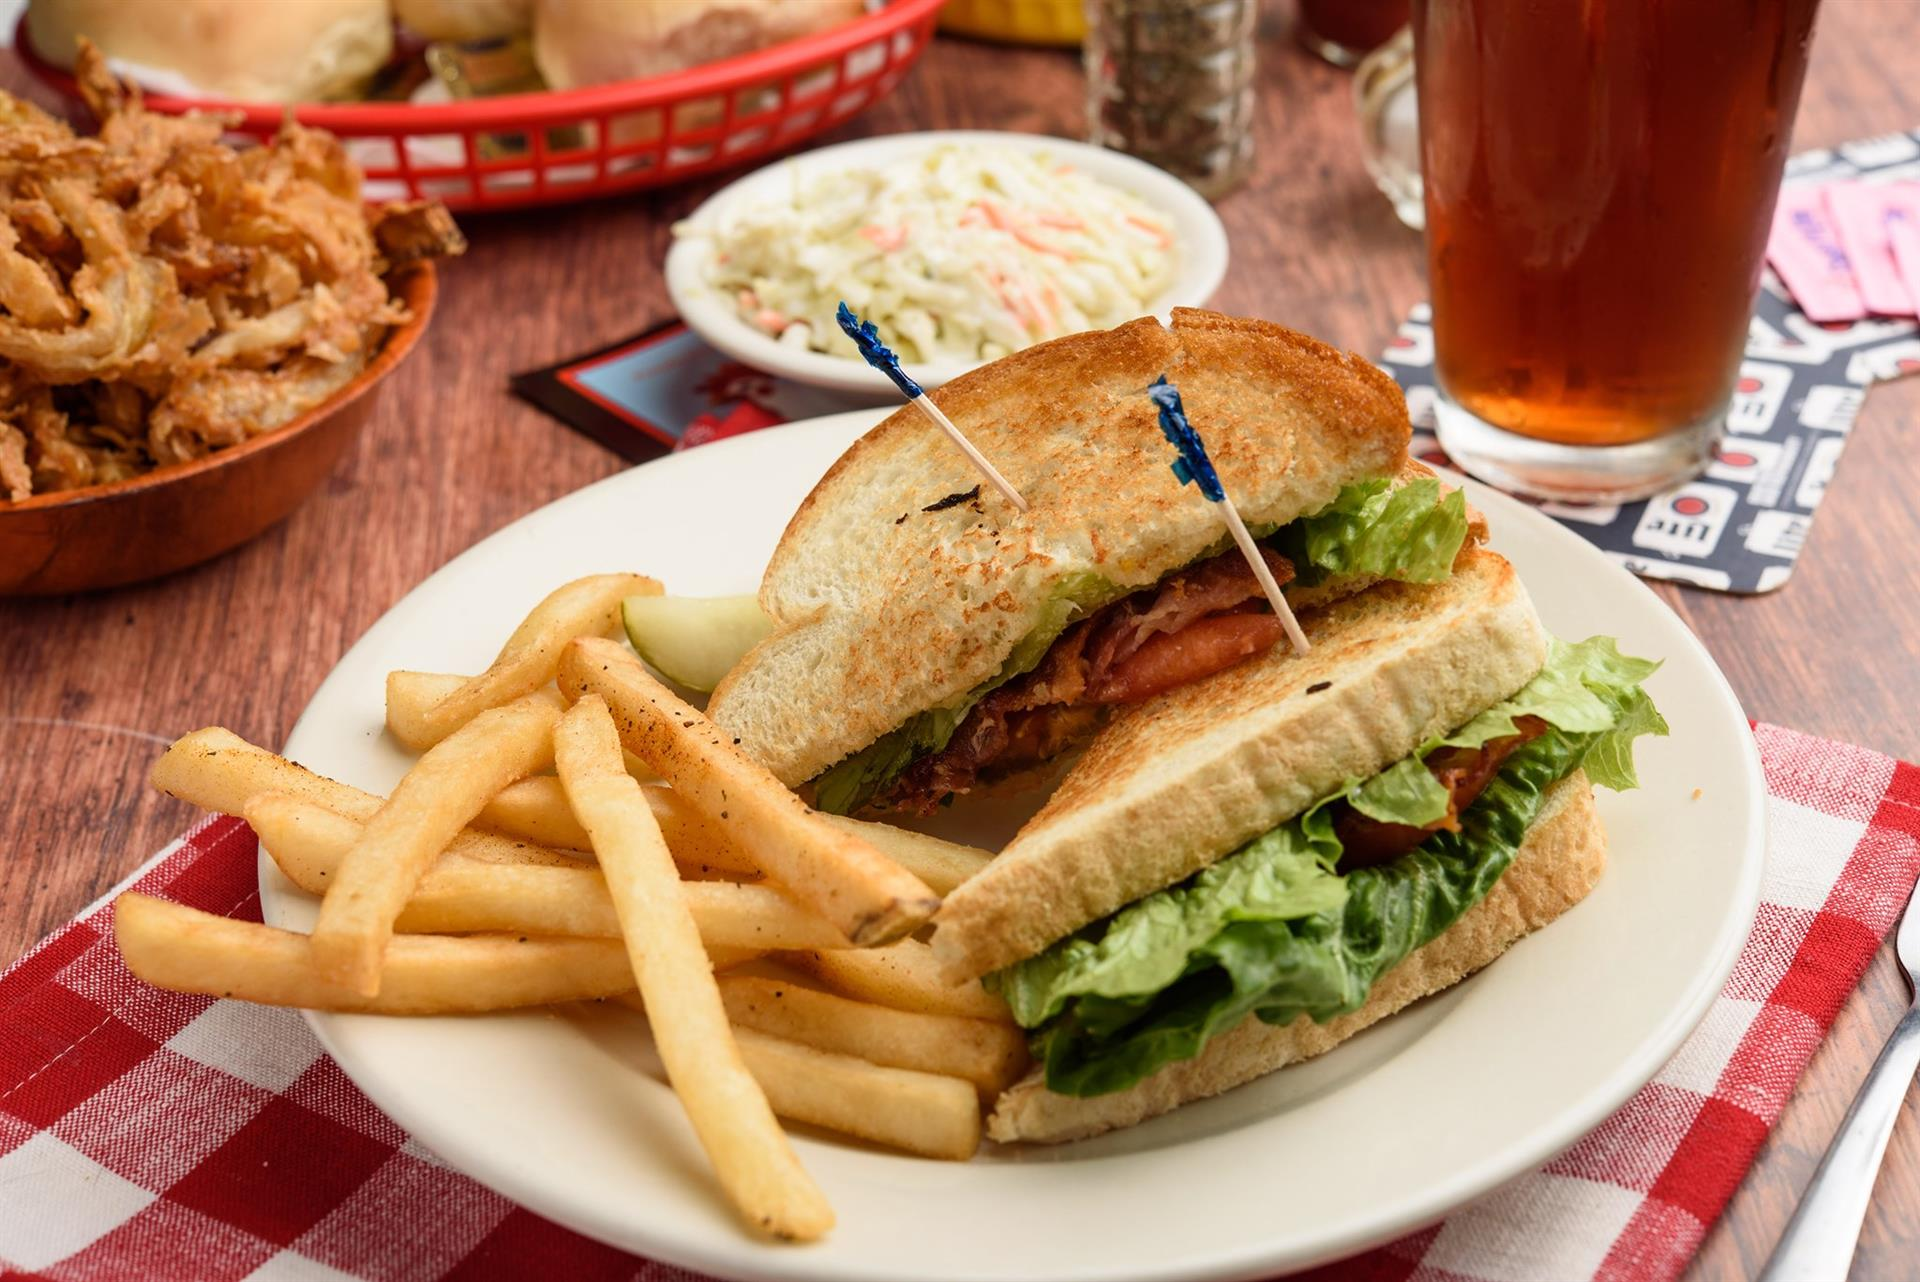 blt sandwich with a side of fries